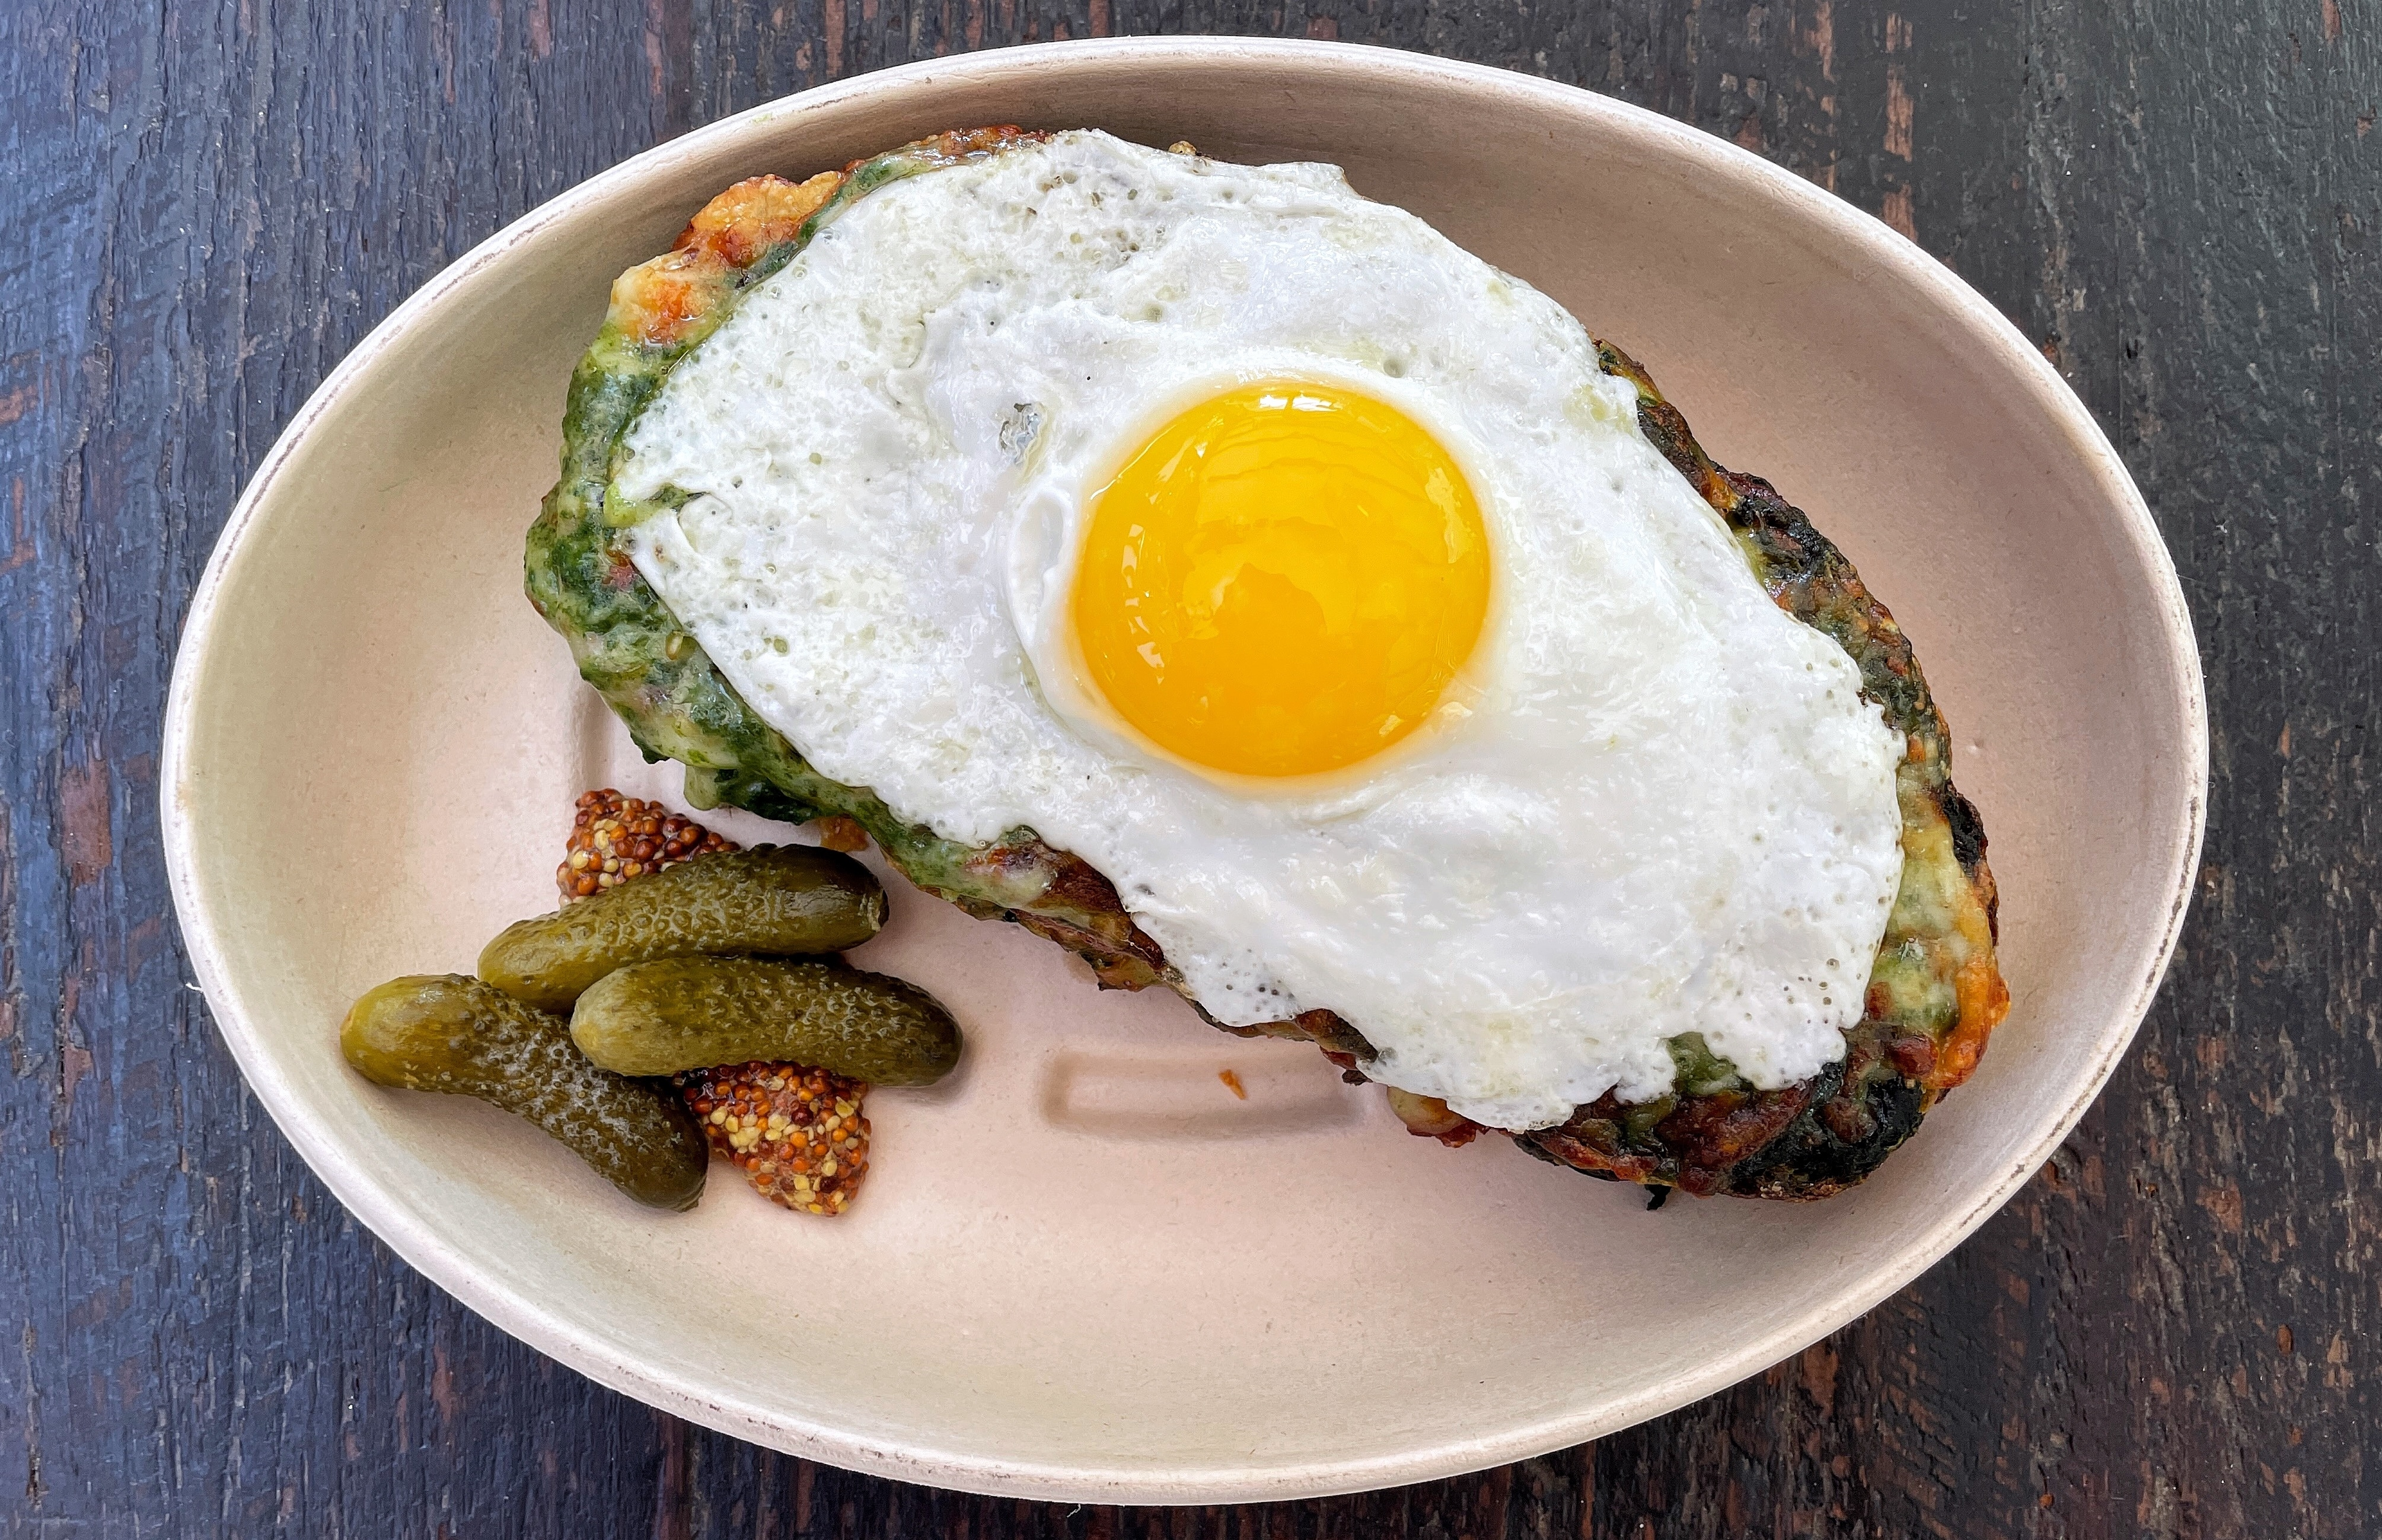 An overhead shot of Dirt Candy's spinach croque monsieur, a sandwich topped with a fried egg, in a takeout container.